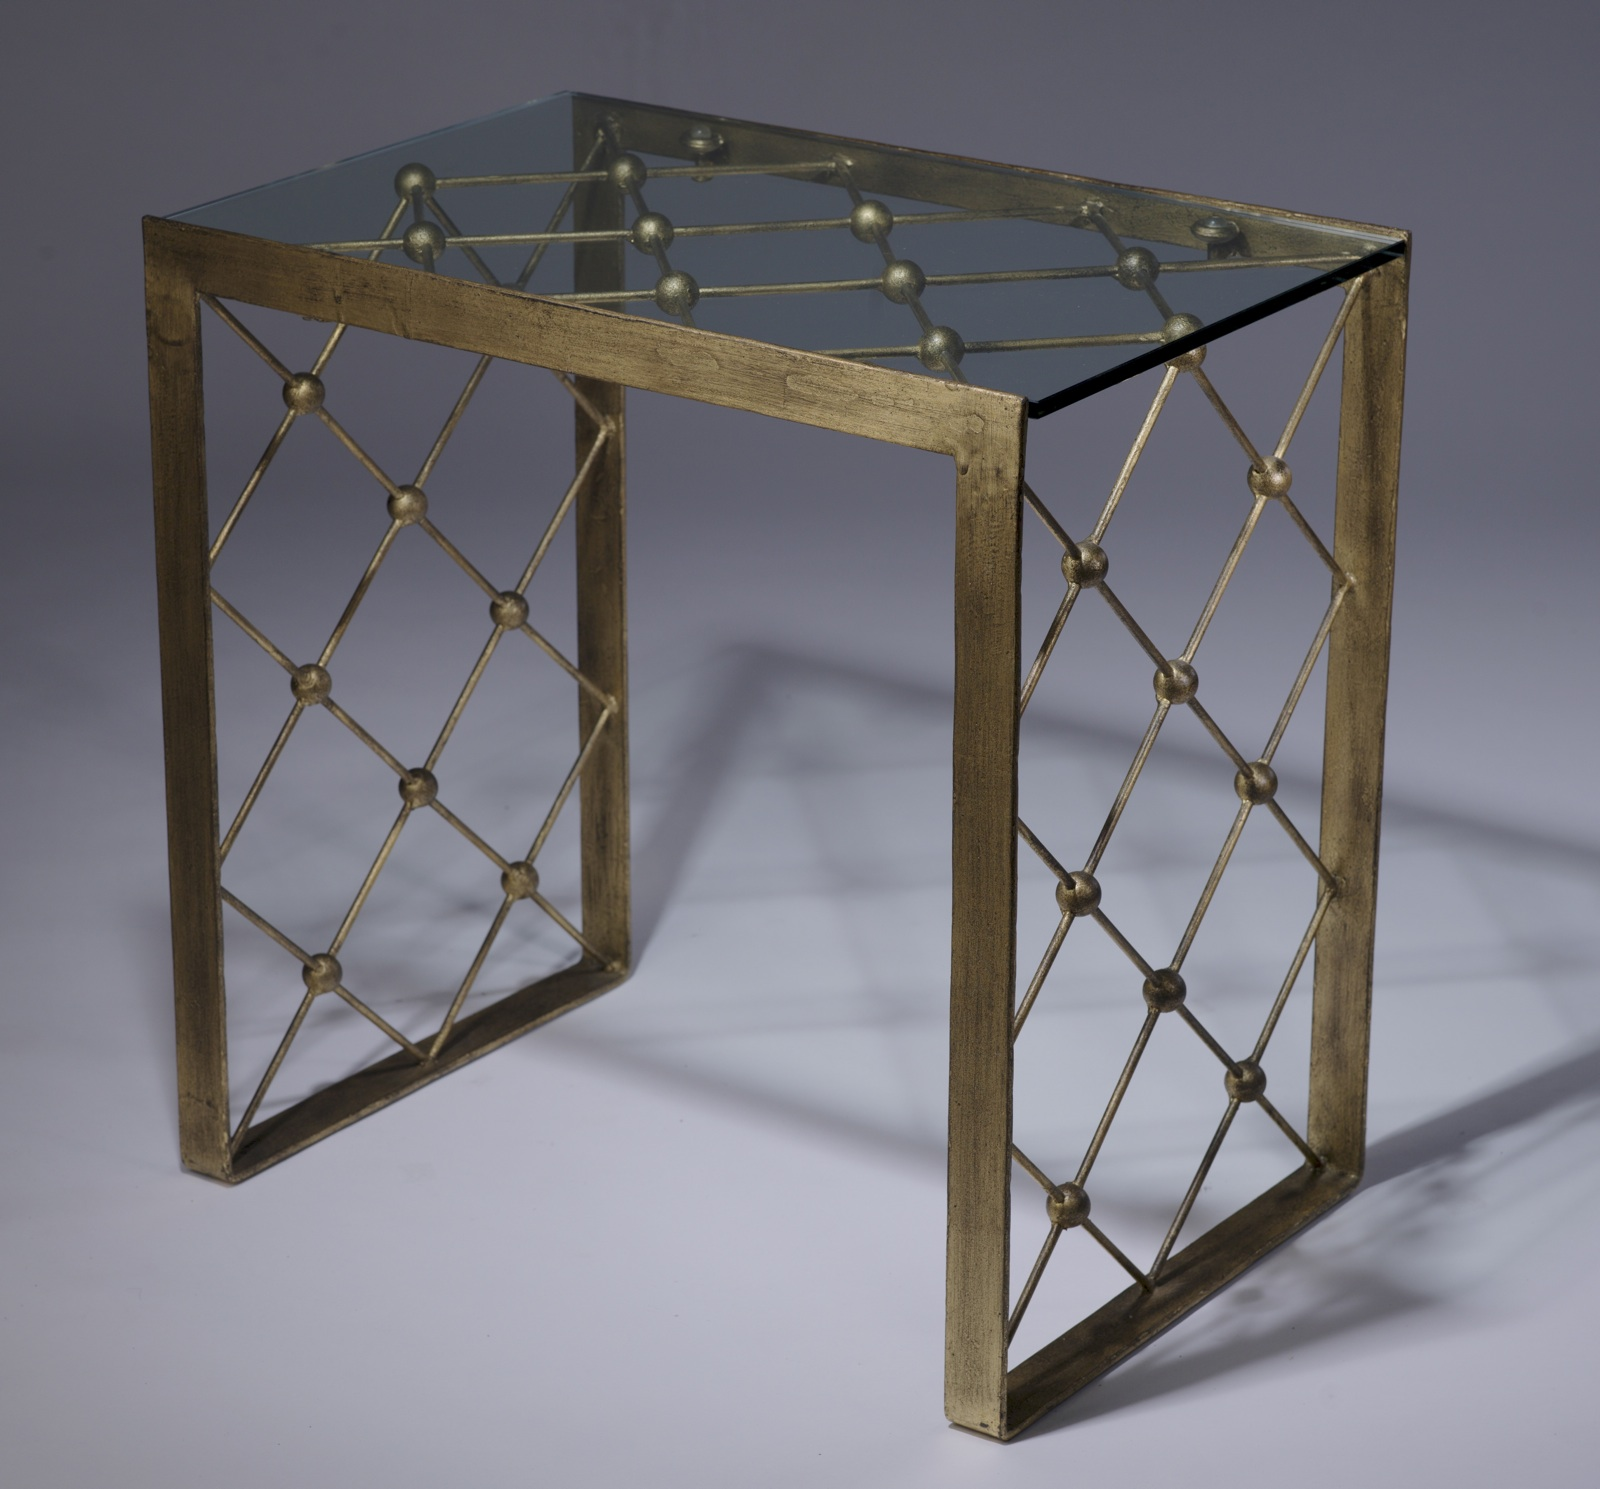 Wrought iron net side table in distressed gold leaf finish for Wrought iron and glass side tables